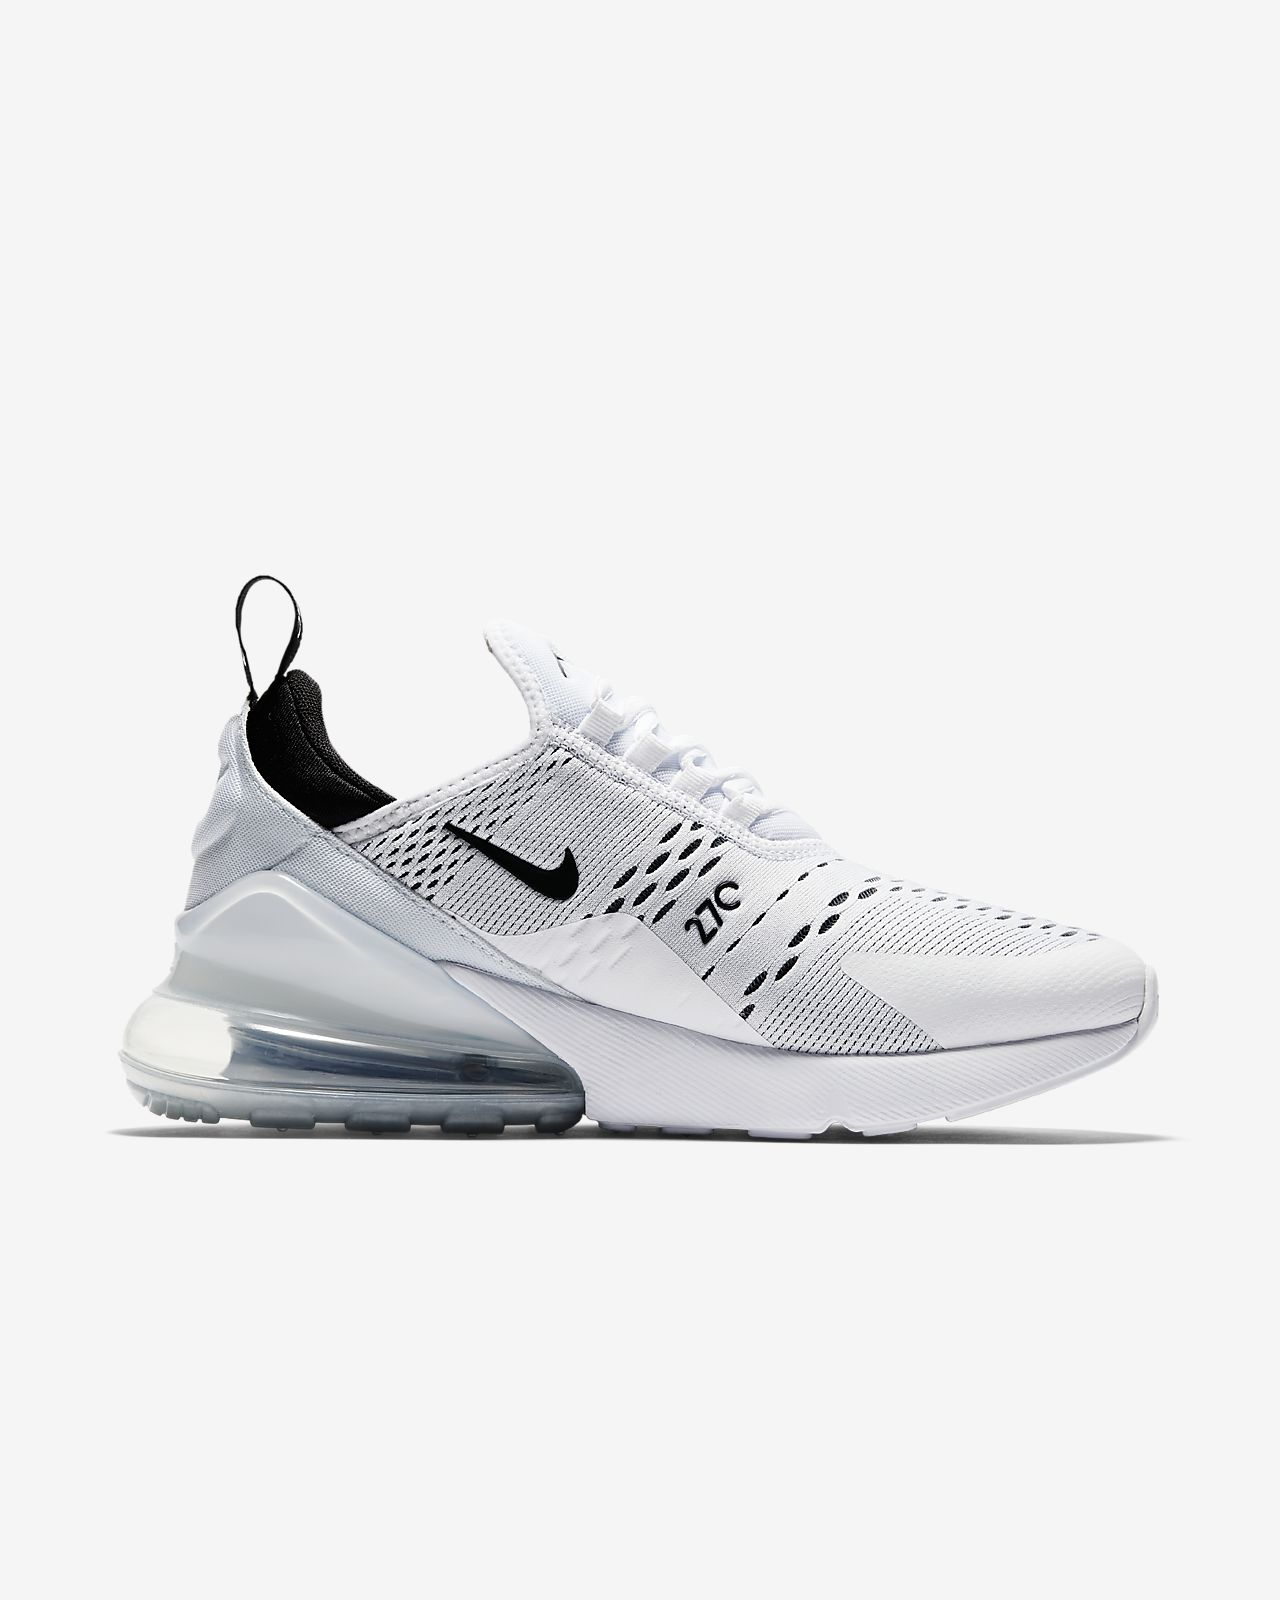 sports shoes official new products Nike Air Max 270 Women's Shoe